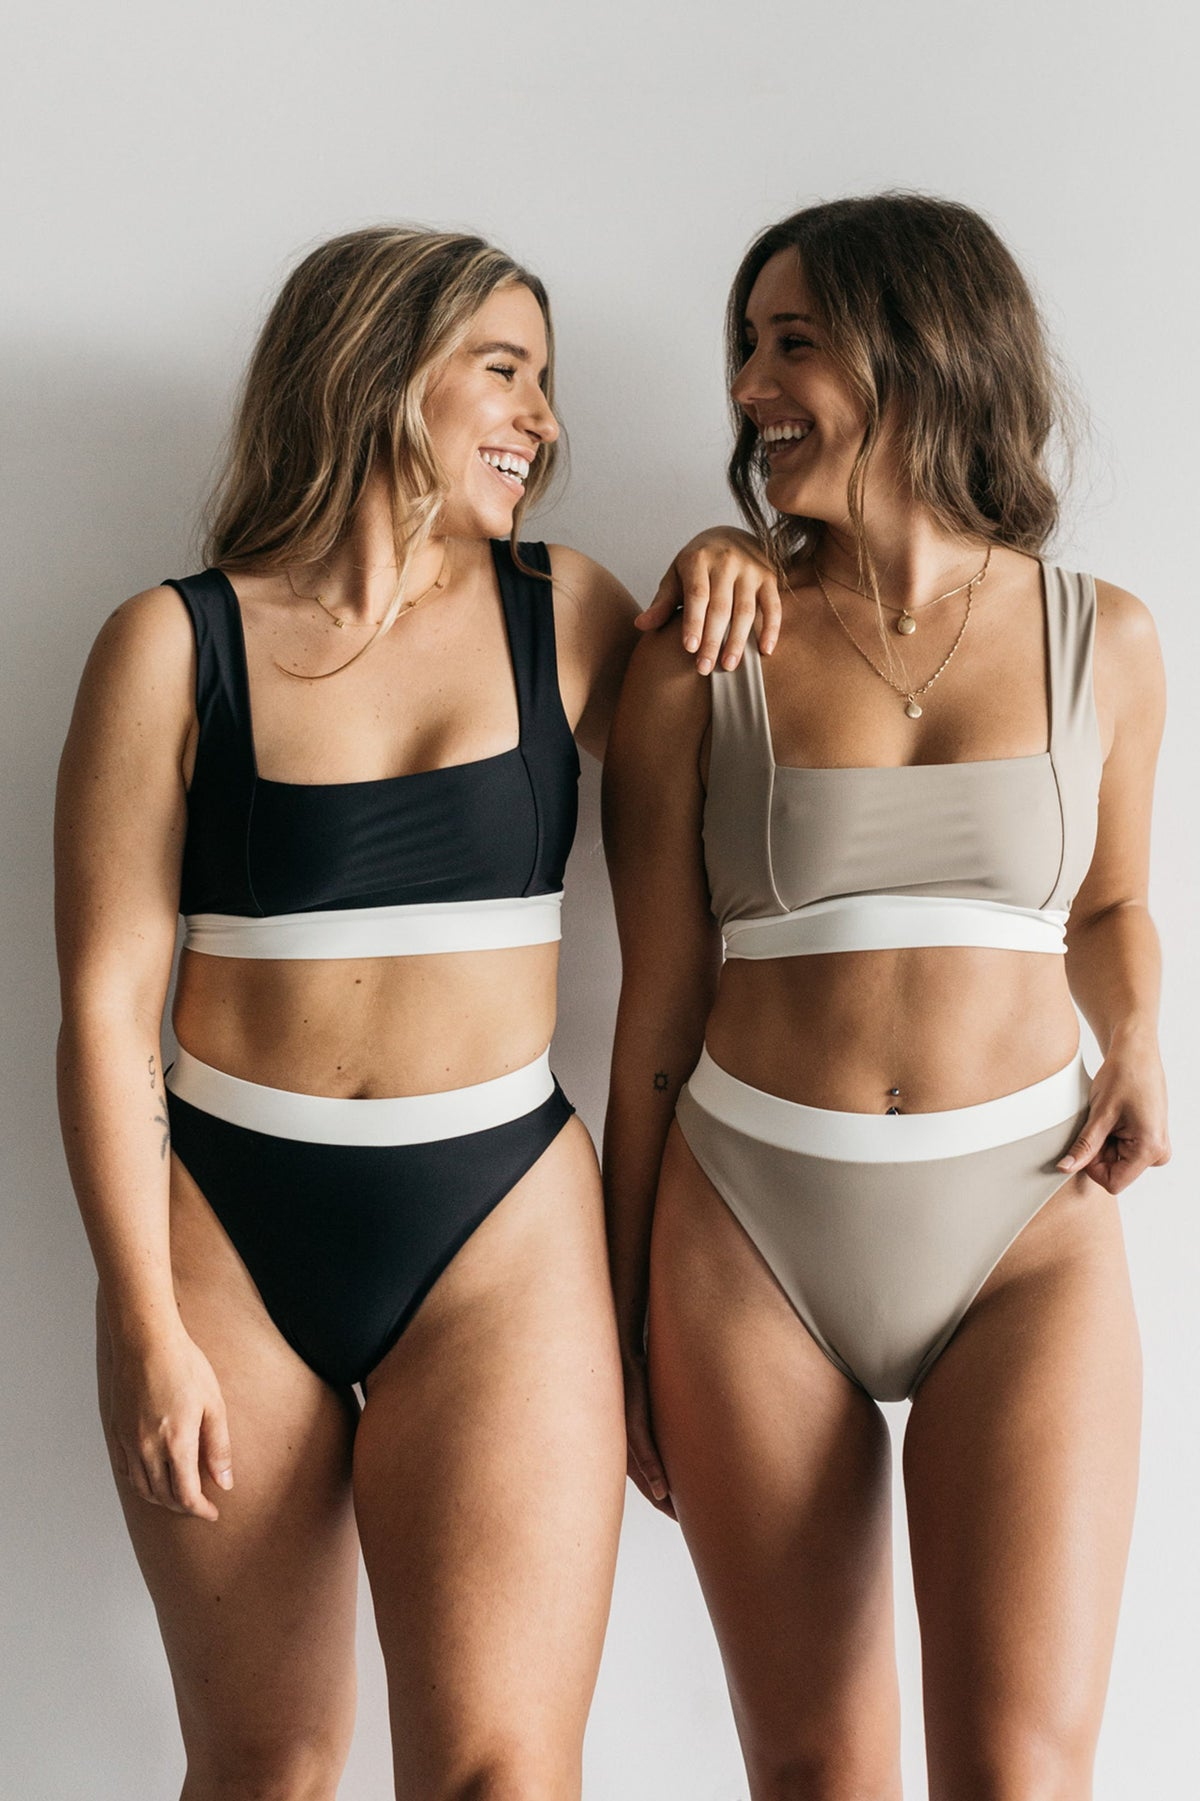 Two women standing in front of a white wall smiling at each other wearing matching bikinis. The woman on the left is wearing black high waisted bikini bottoms with a white waistband and a matching black and white bikini top. The woman on the right is wearing high waisted nude bikini bottoms with a white waistband and a matching nude bikini top with a white band.